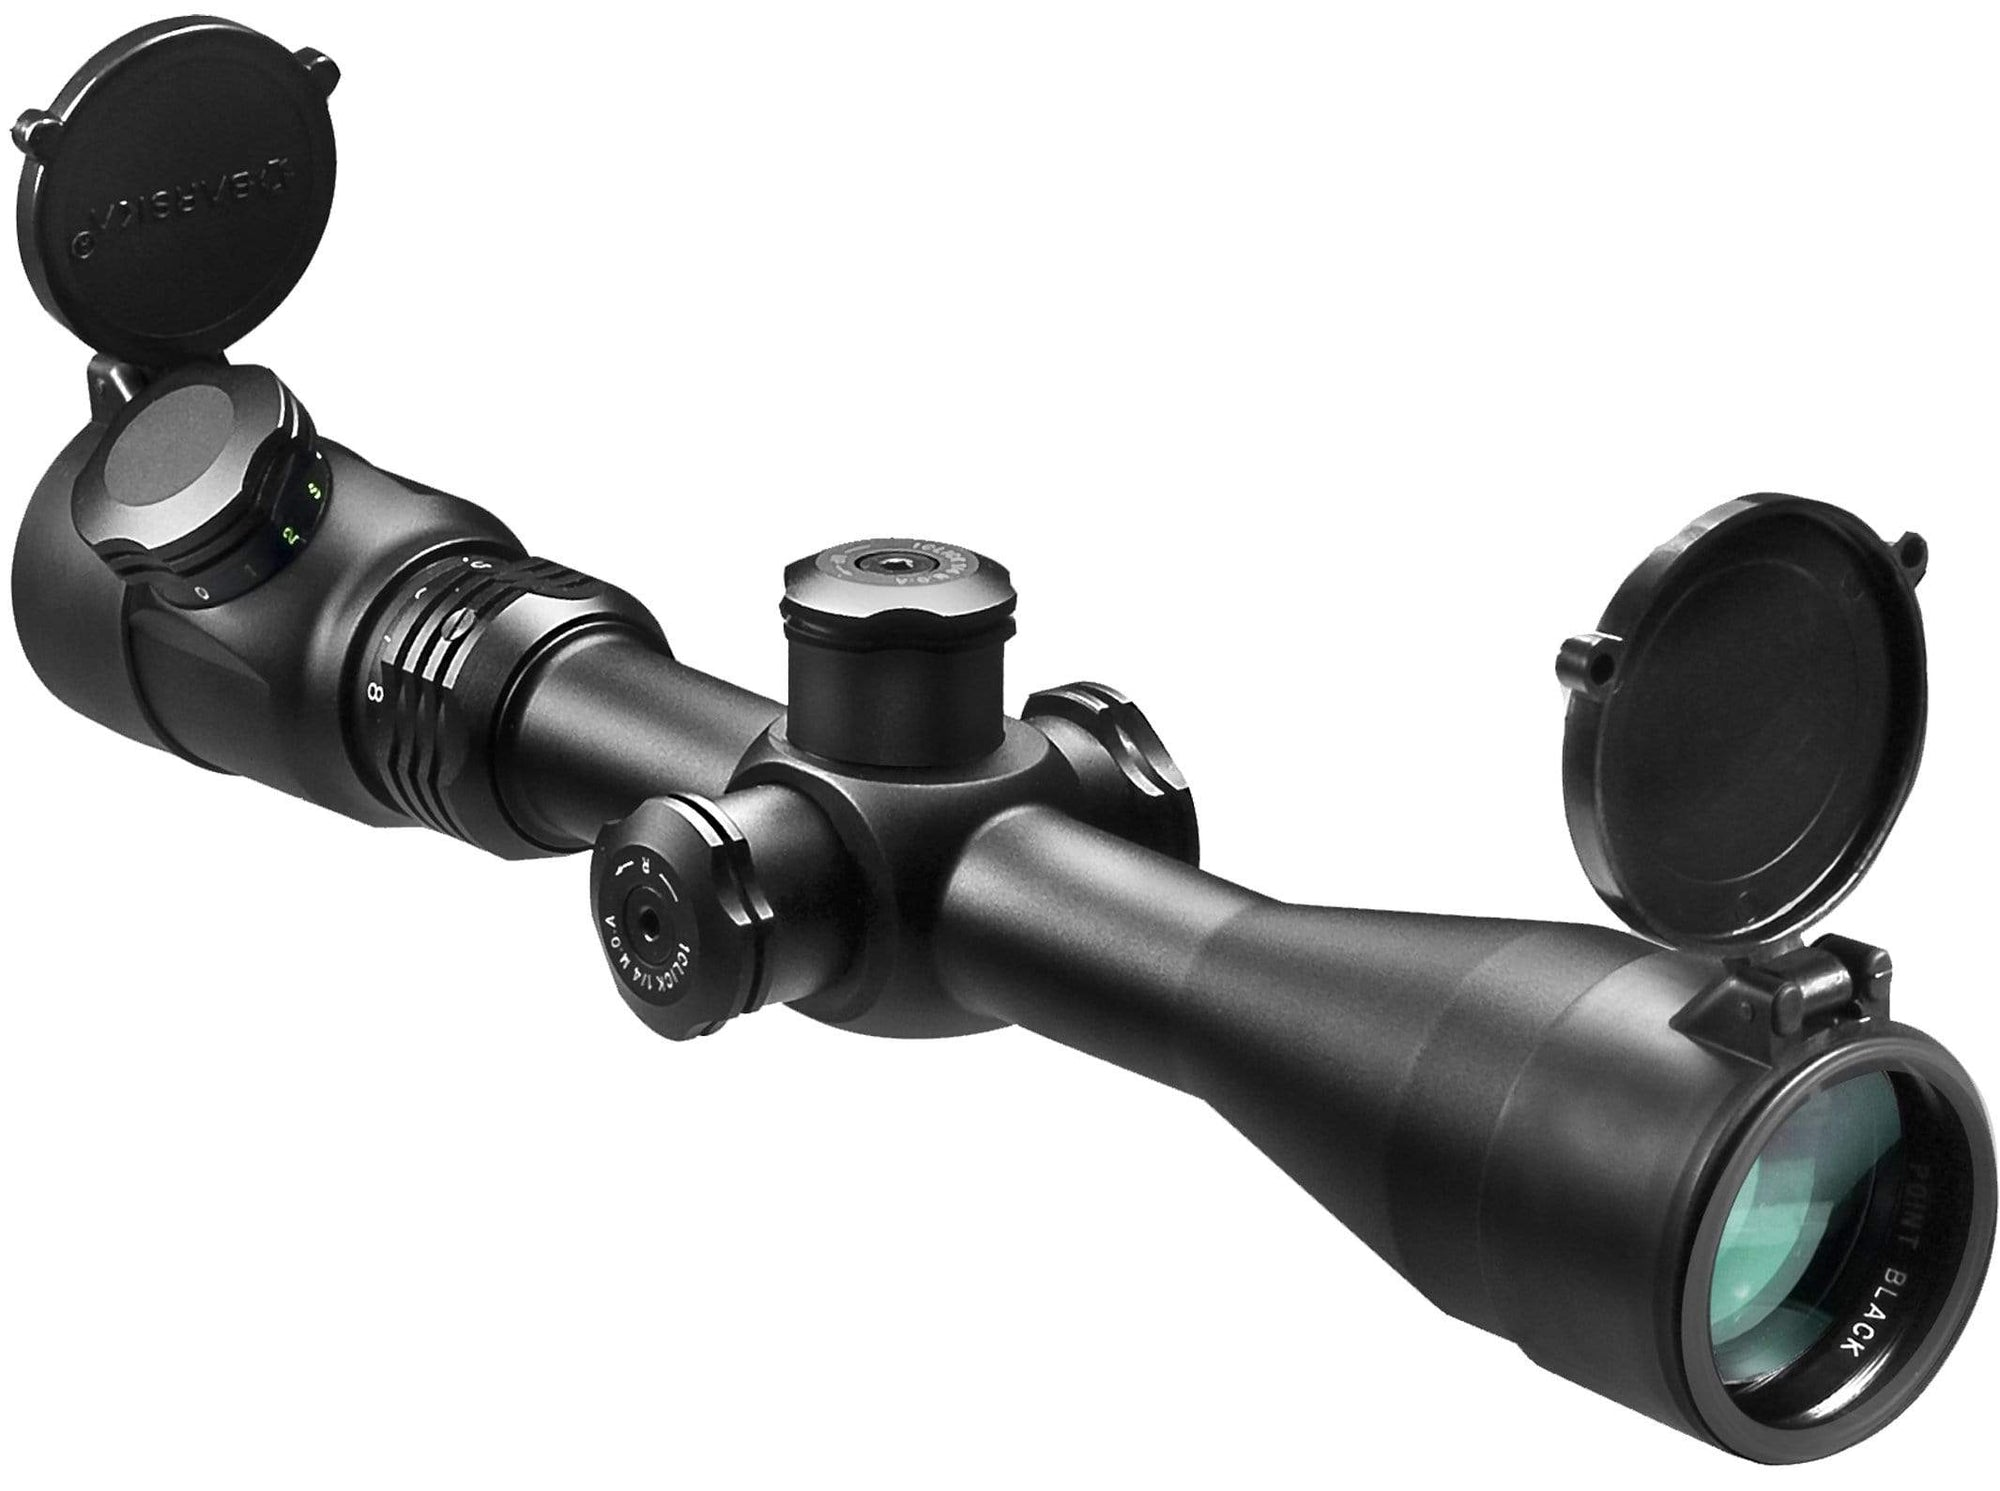 Barska 4-16 x 40 IR 3G Point Black .223 B.D.C. Rifle Scope Armadillo Safe and Vault